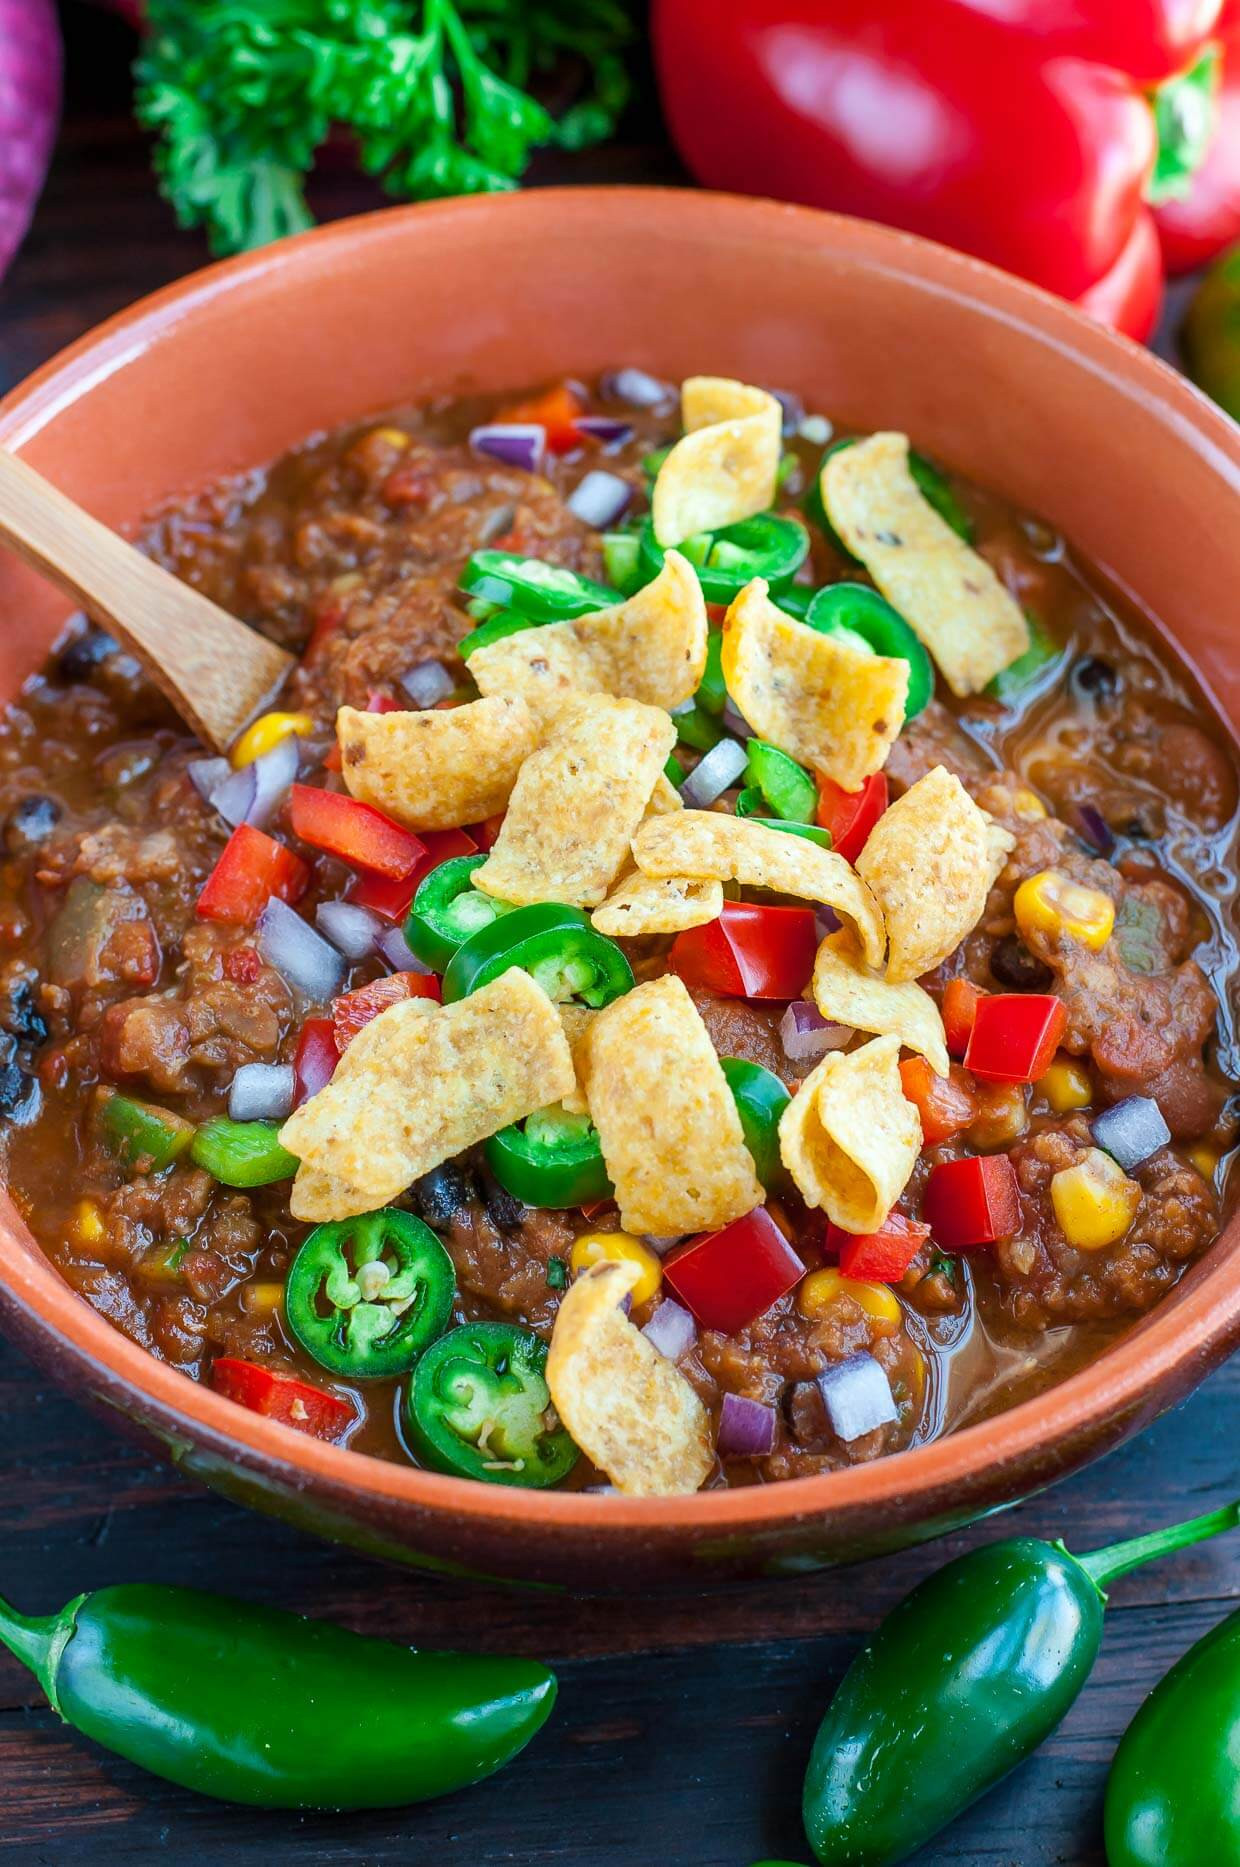 Best Vegetarian Mexican Recipes  The Best 40 Vegan Mexican Recipes for a Healthy Easy